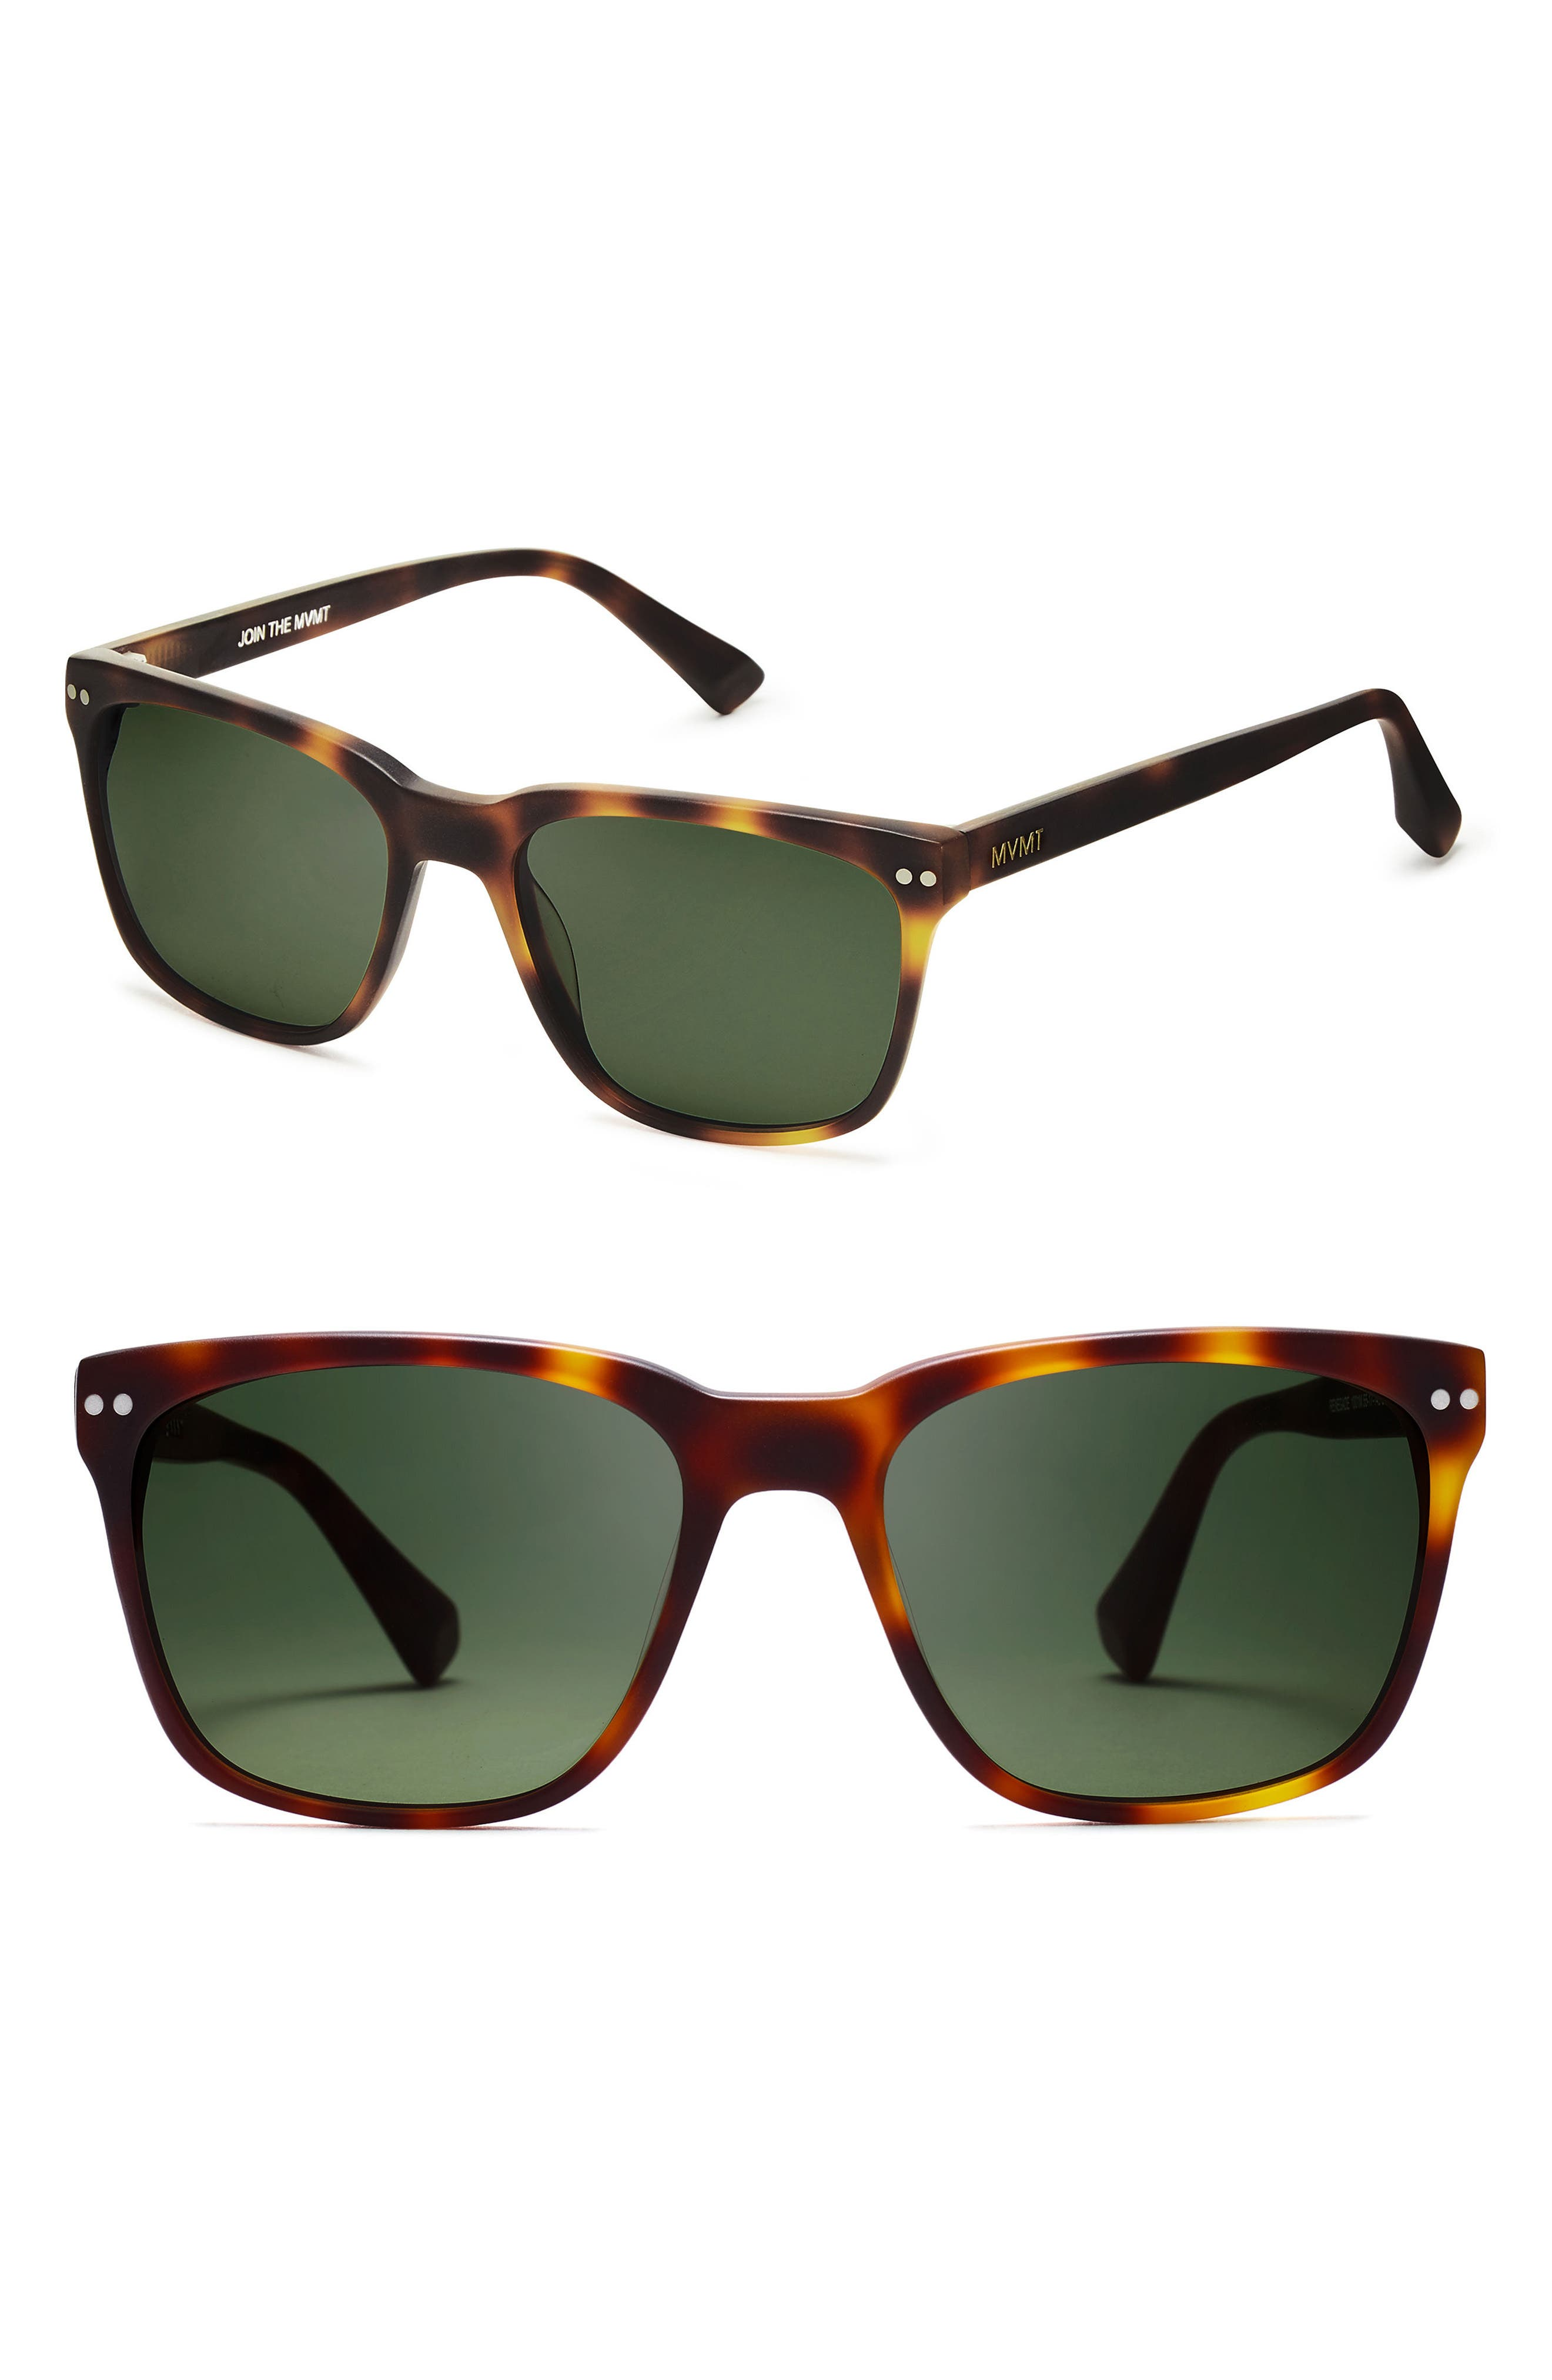 Renegade 55mm Sunglasses,                         Main,                         color, Whiskey Tortoise